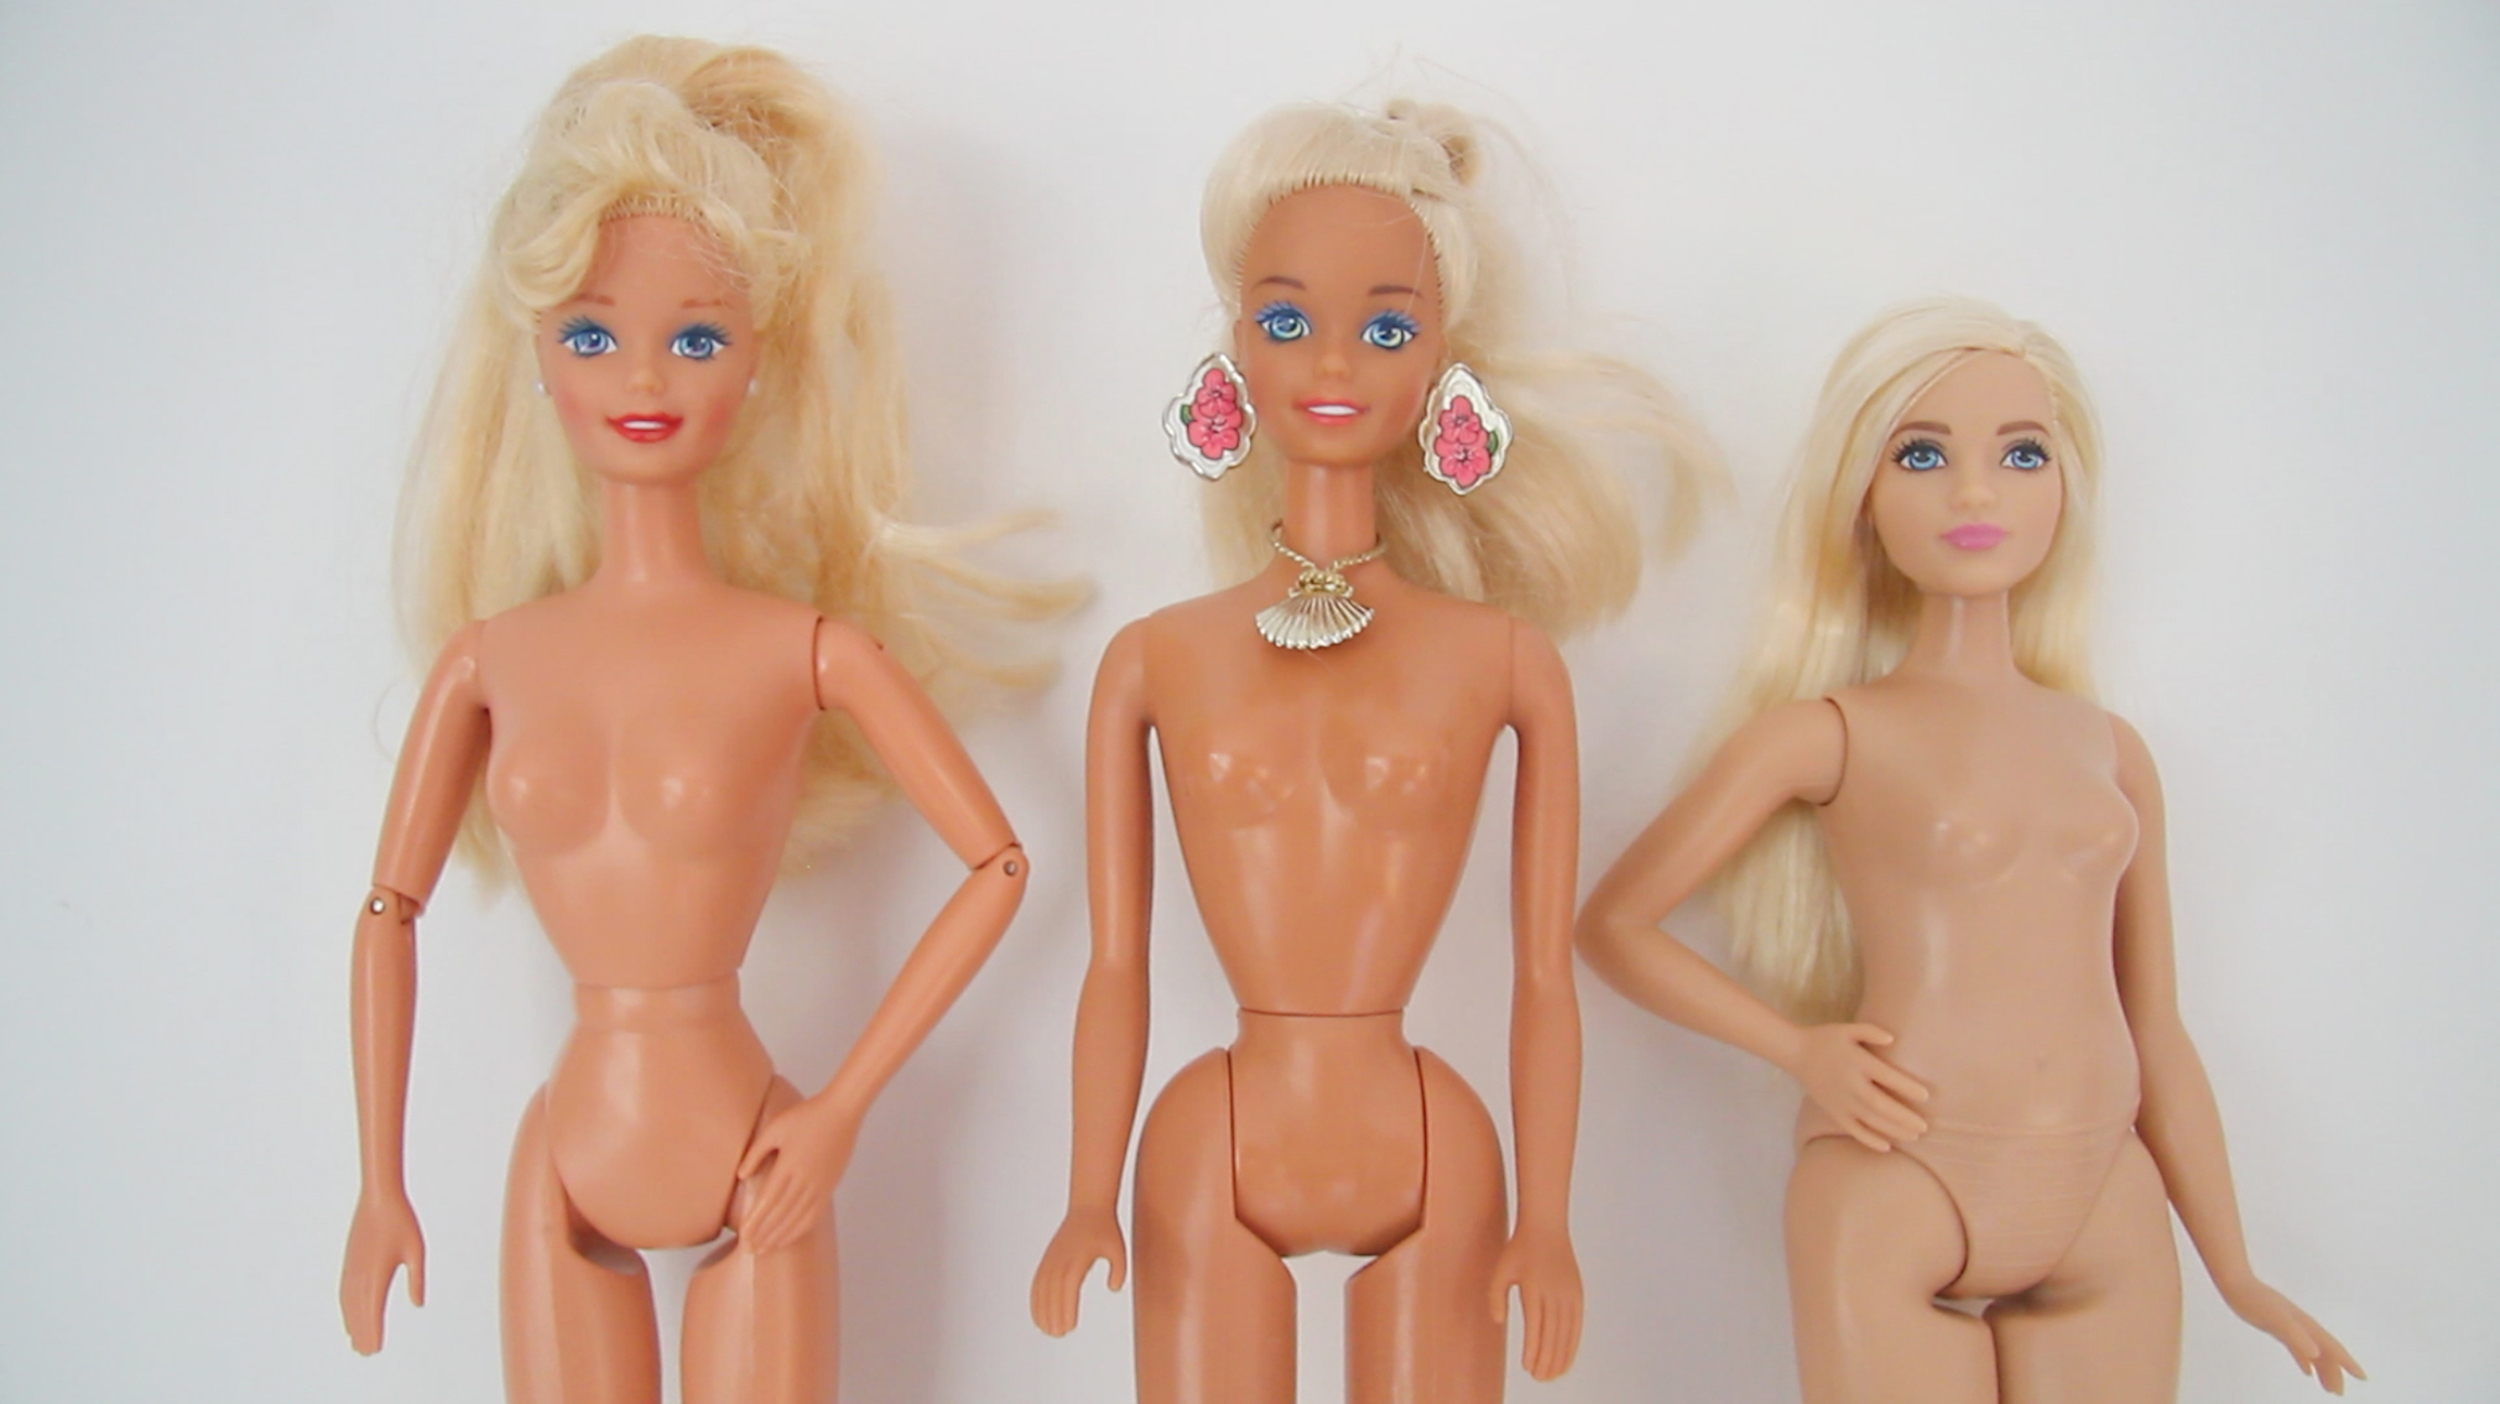 Measure Up - Introduction of Barbie Fashionistas 'Curvy' Barbie alongside Barbie dolls from 1990s/early 2000s - June 2016